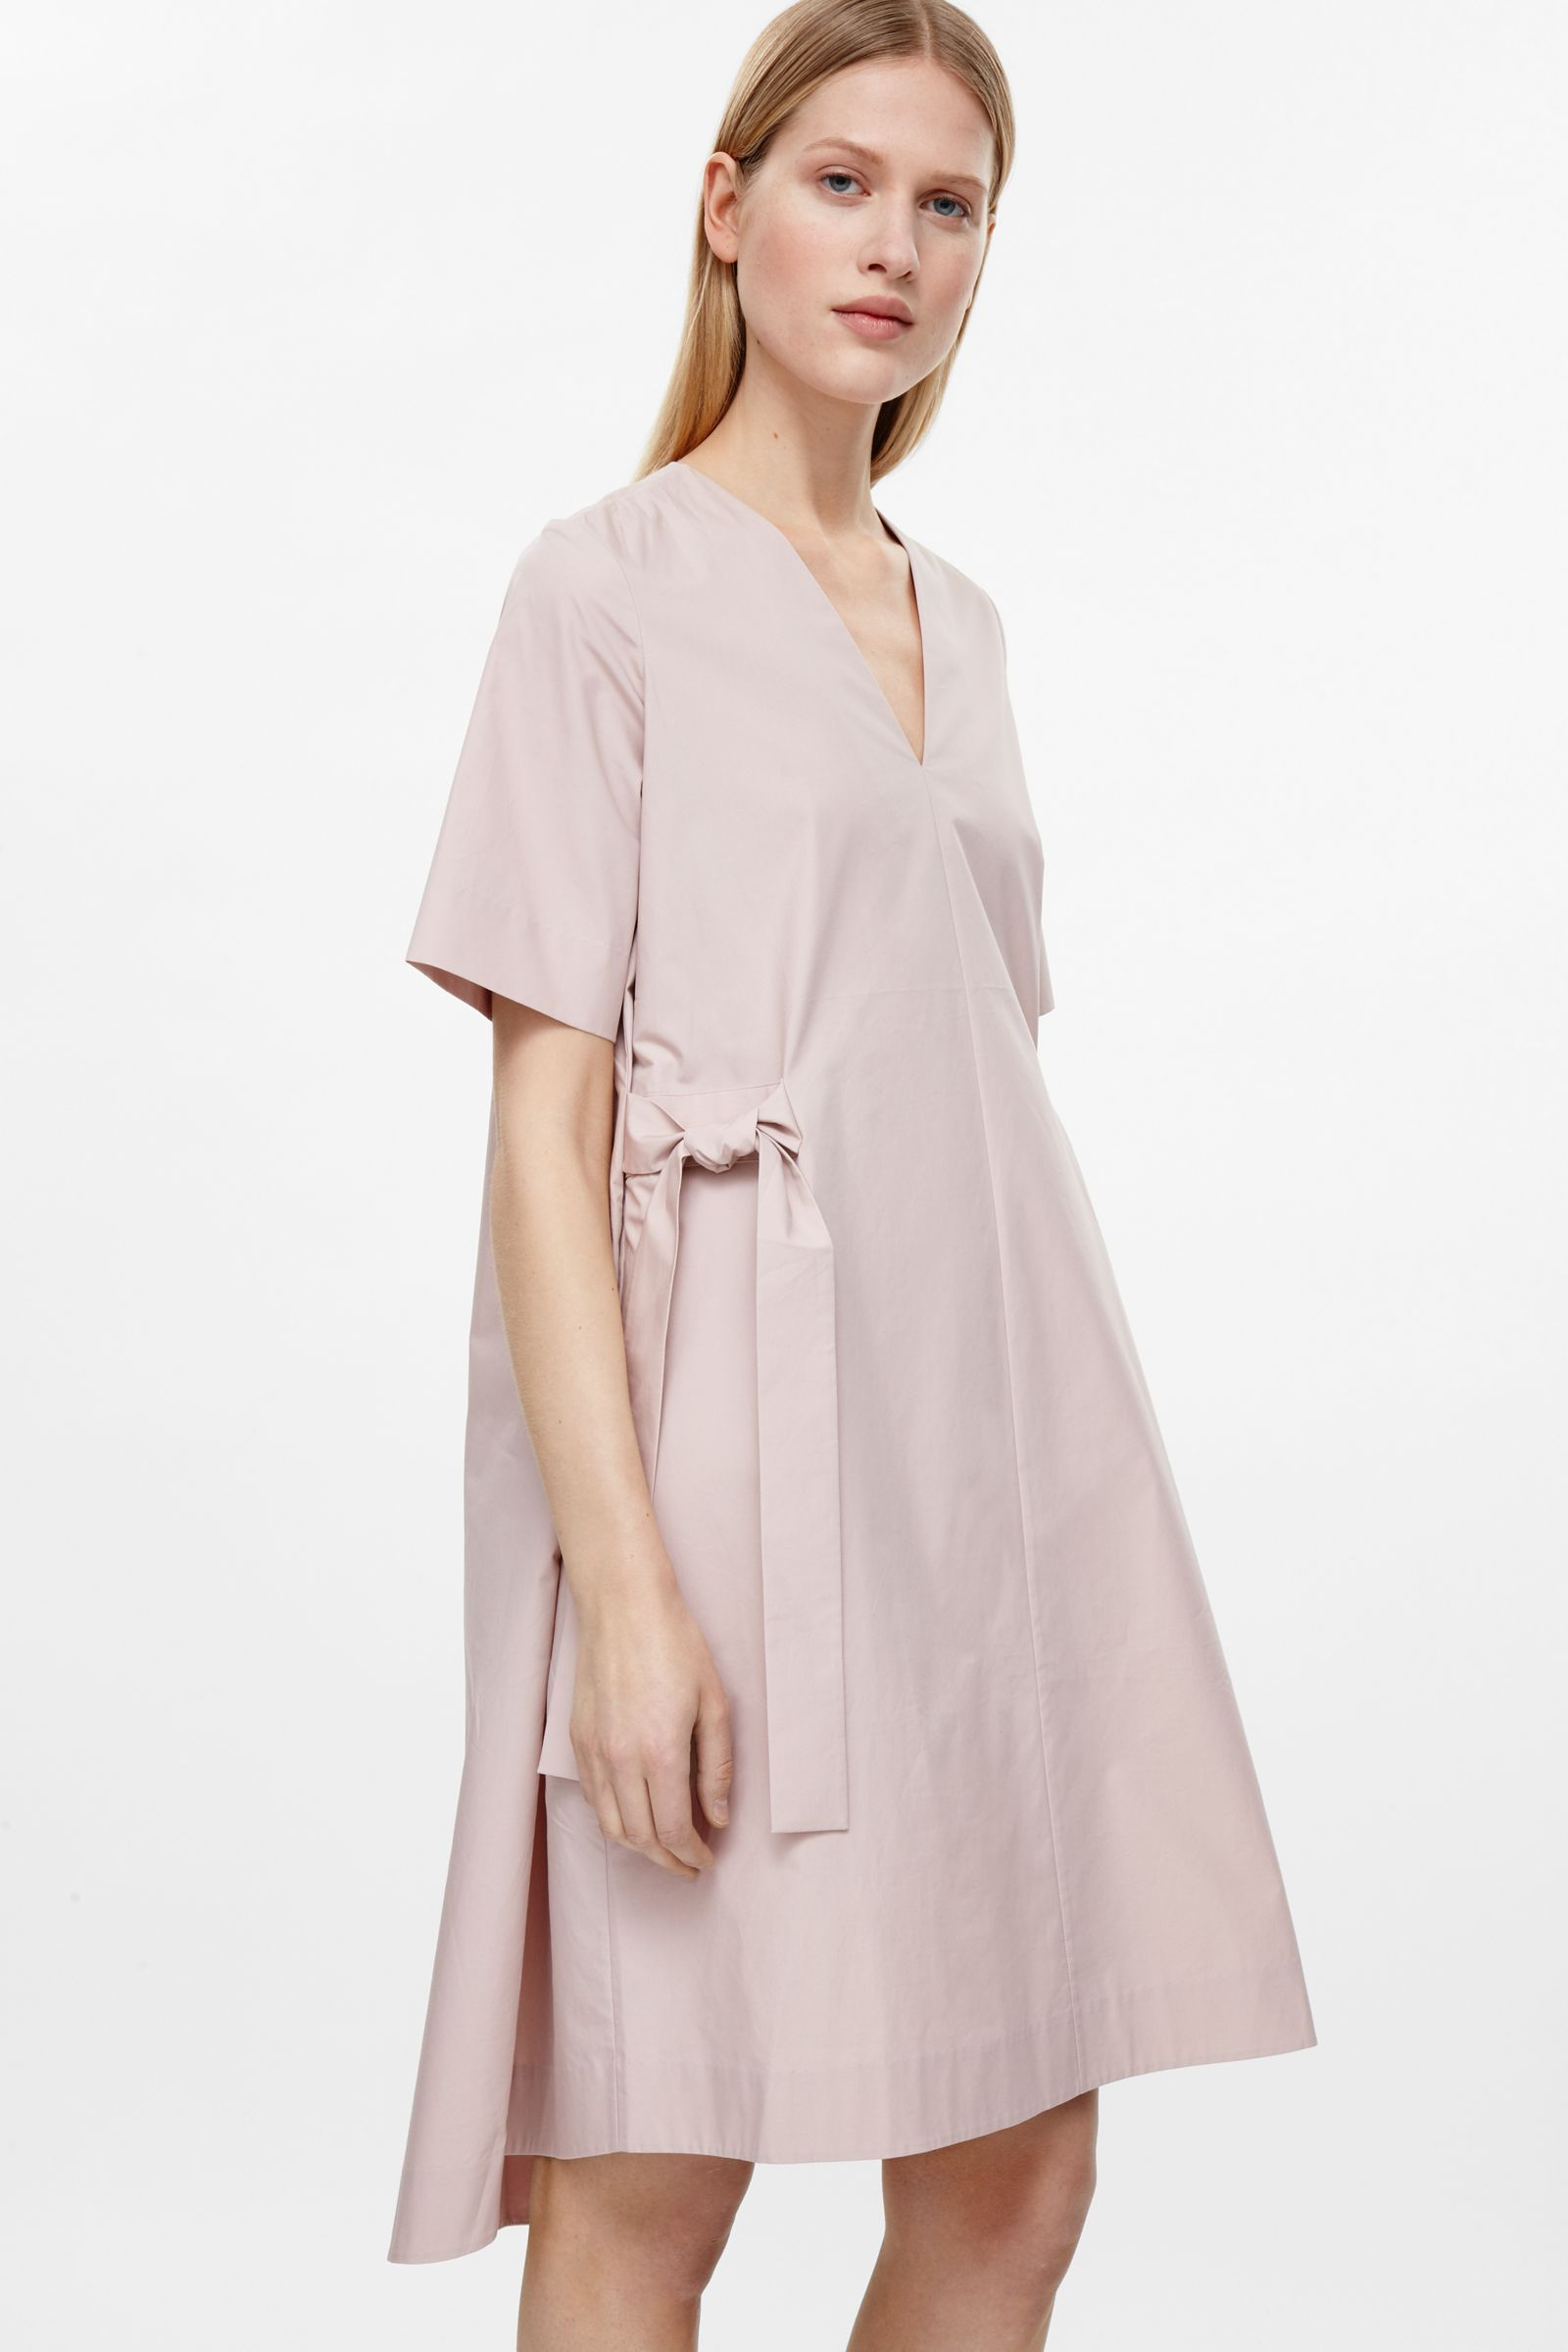 Coming in at the waist this vneck dress has tie belts on either